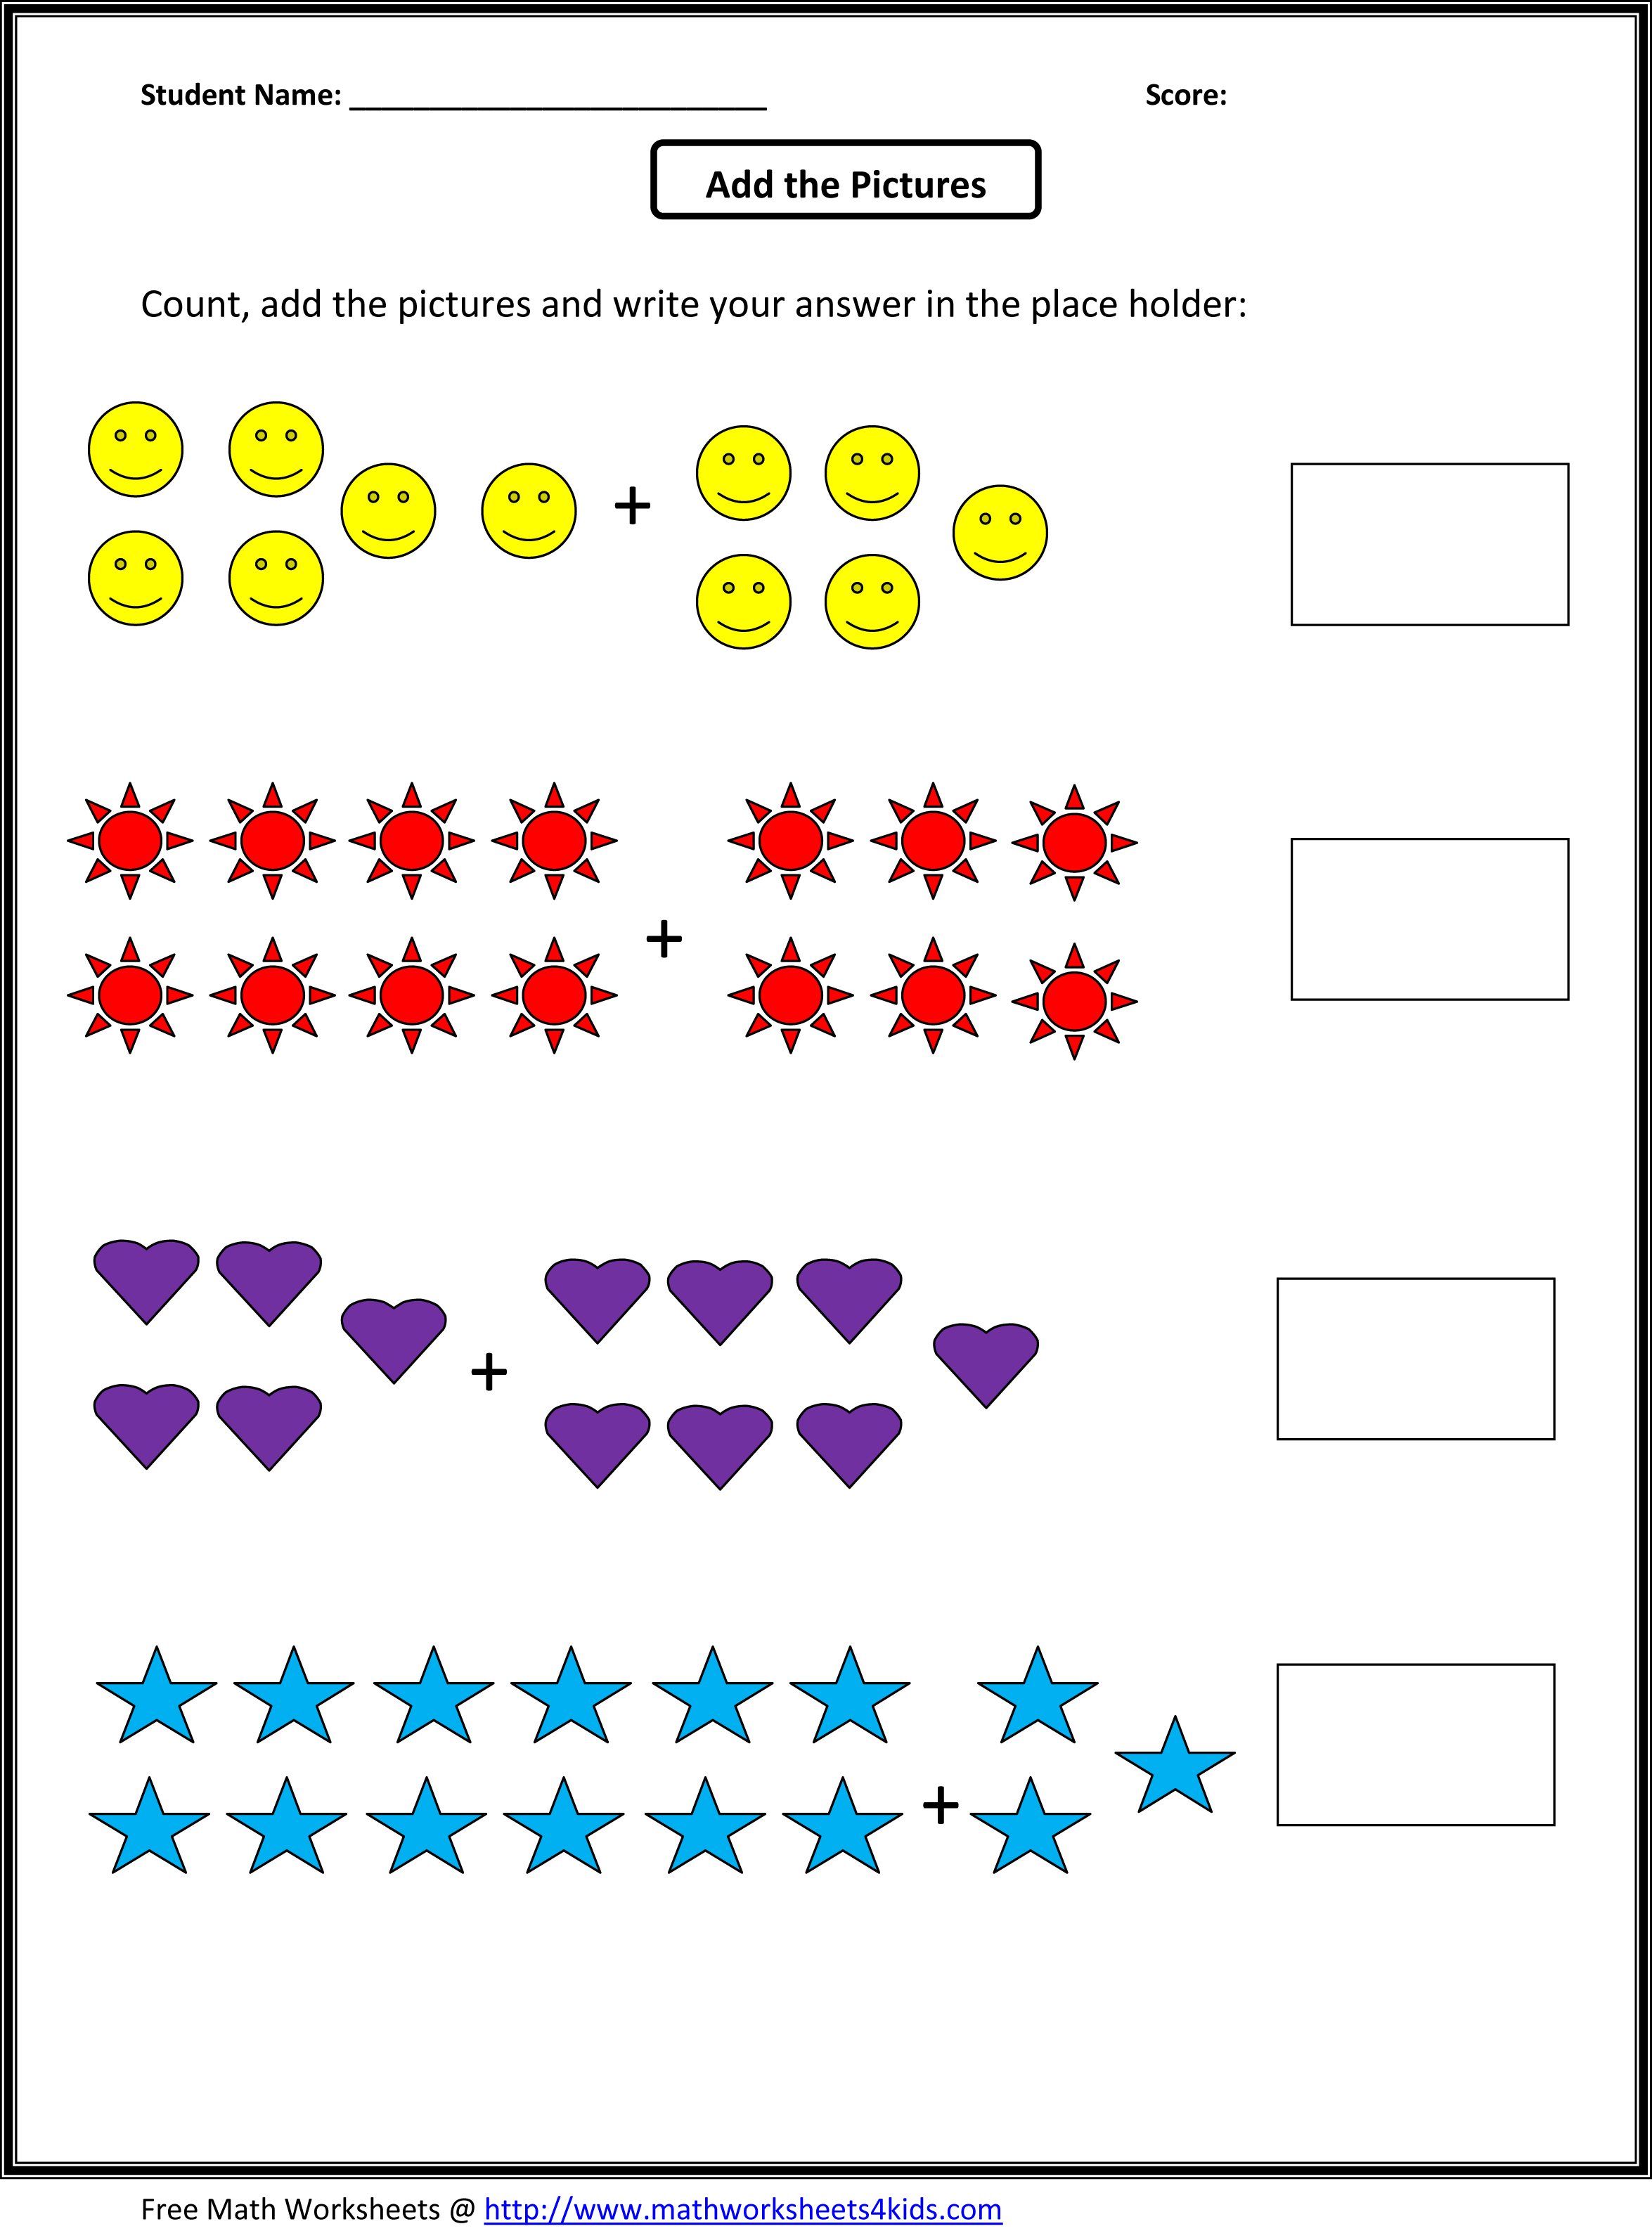 Weirdmailus  Picturesque Grade  Maths Worksheet  Reocurent With Goodlooking Math Worksheets For St Grade Free  Reocurent With Alluring Esl Clothes Worksheet Also Letter Printing Worksheets In Addition Area And Perimeter Of Squares And Rectangles Worksheet And Punctuation Worksheets Ks As Well As Alphabet Worksheet For Kids Additionally Vowel And Consonant Worksheet From Reocurentcom With Weirdmailus  Goodlooking Grade  Maths Worksheet  Reocurent With Alluring Math Worksheets For St Grade Free  Reocurent And Picturesque Esl Clothes Worksheet Also Letter Printing Worksheets In Addition Area And Perimeter Of Squares And Rectangles Worksheet From Reocurentcom